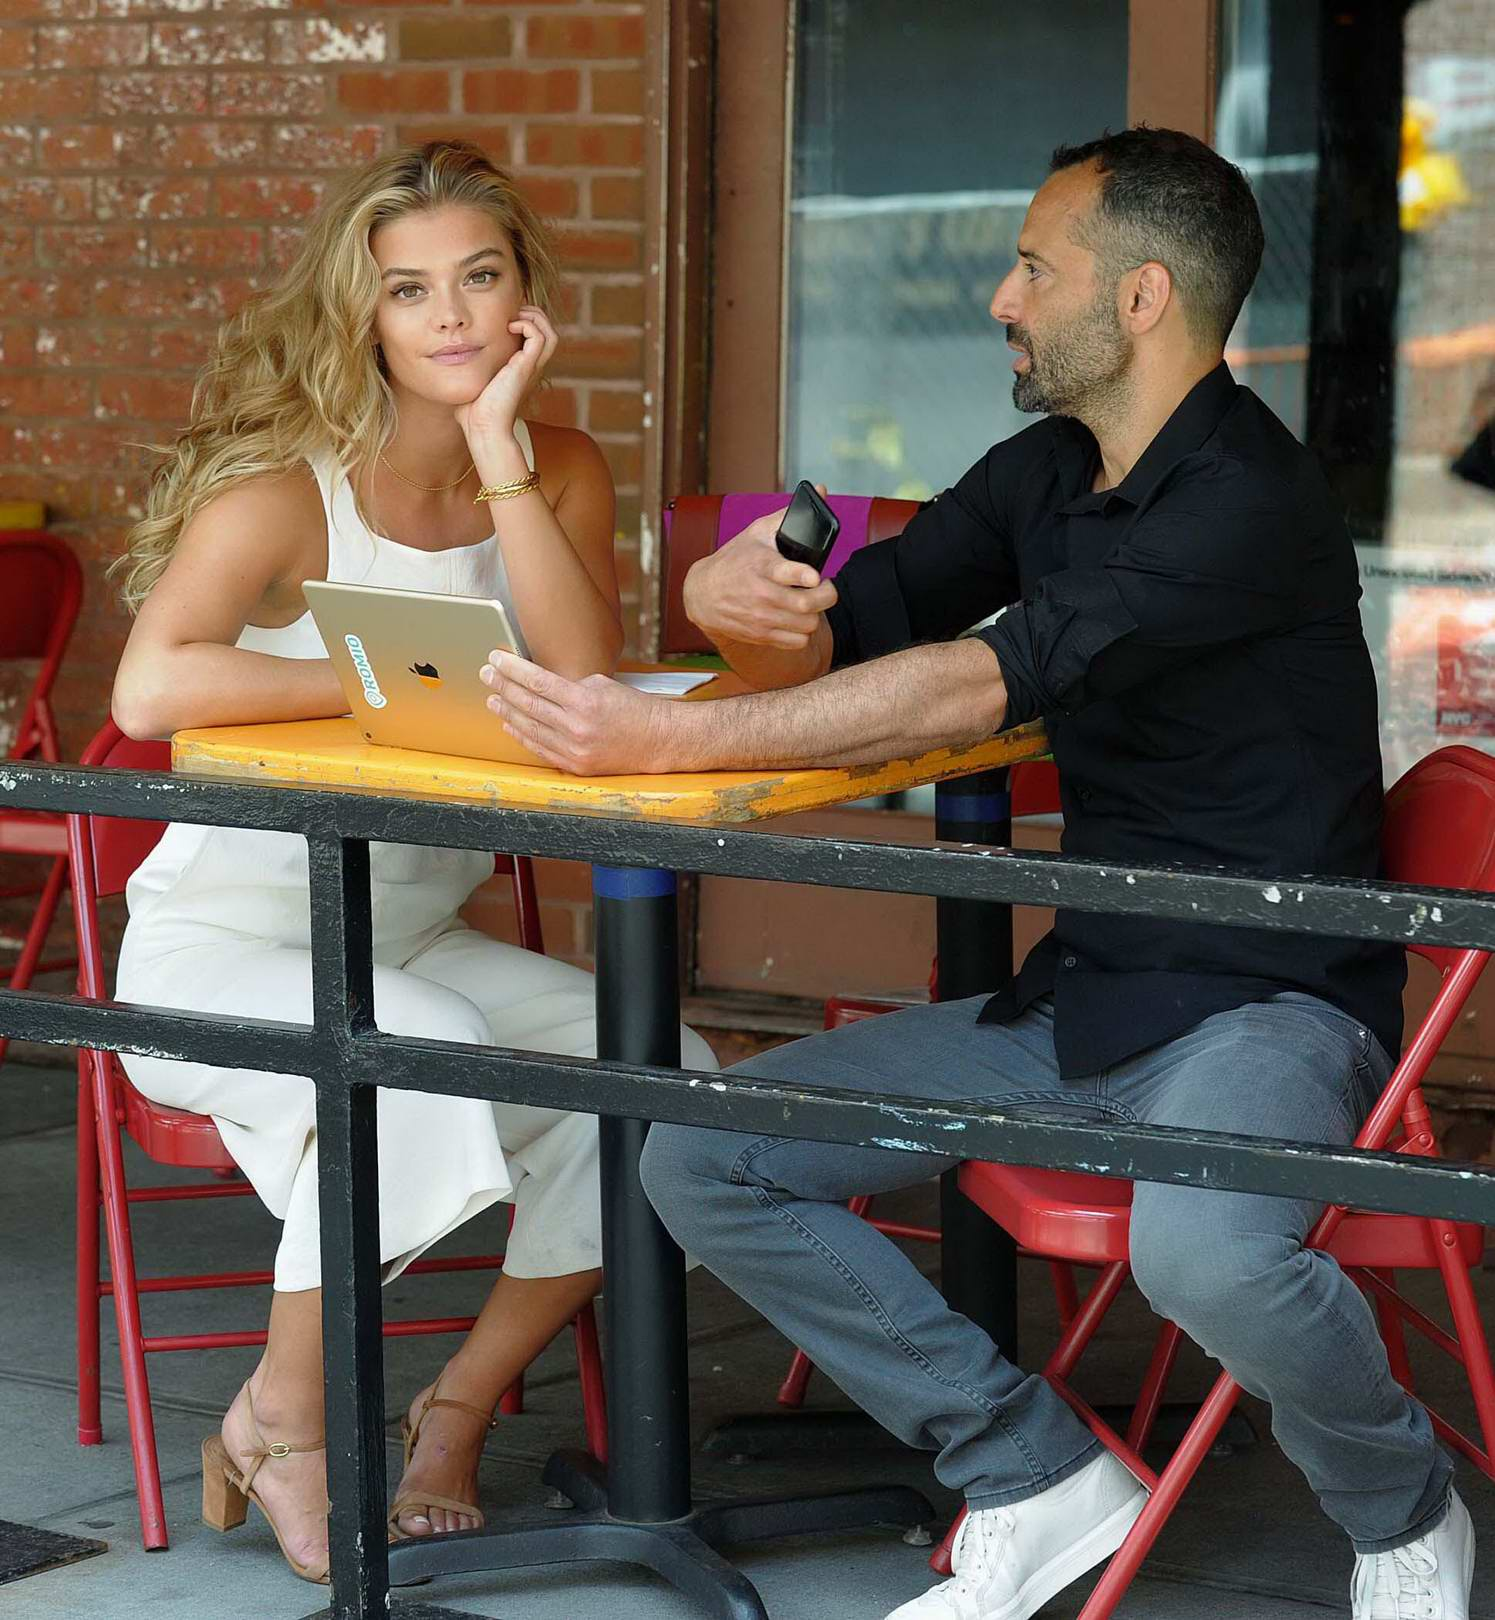 Nina Agdal out on lunch with a Friend in New York